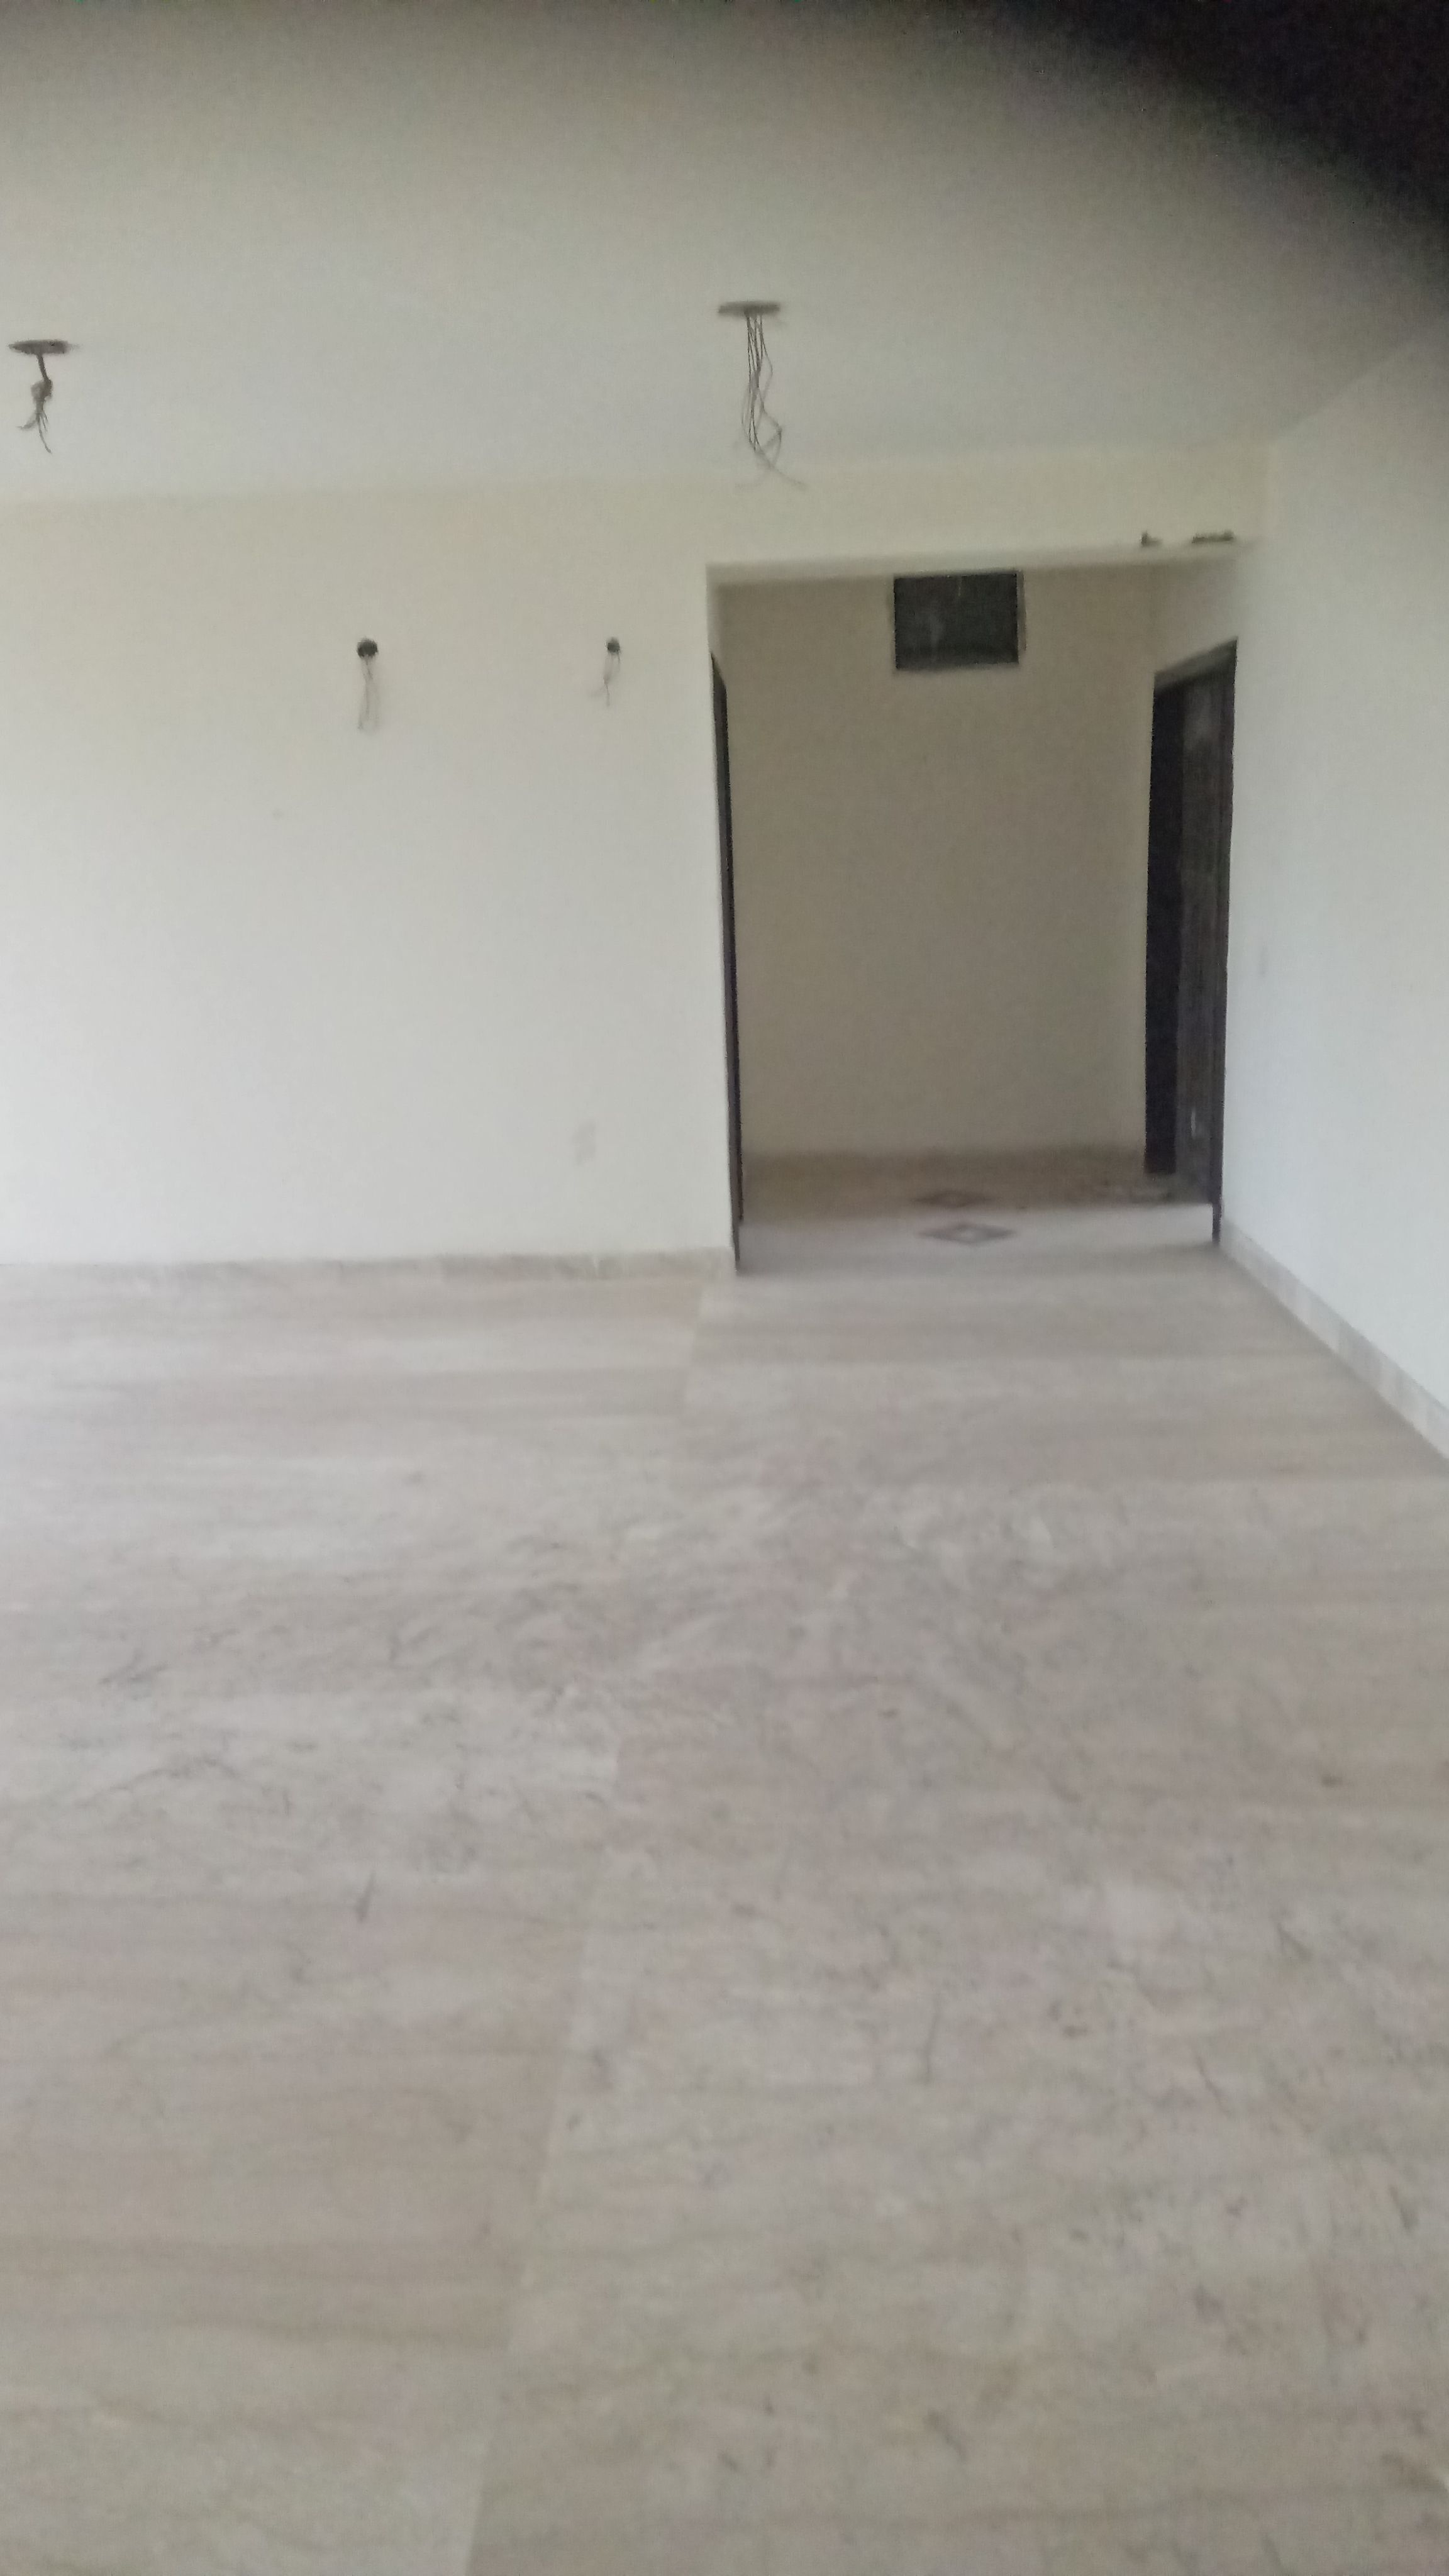 Contact Us 8510070061 Home Office House Building Old Renovation Restoration Remodeling Contractor Renovation Contractor Remodeling Renovation Home Renovation